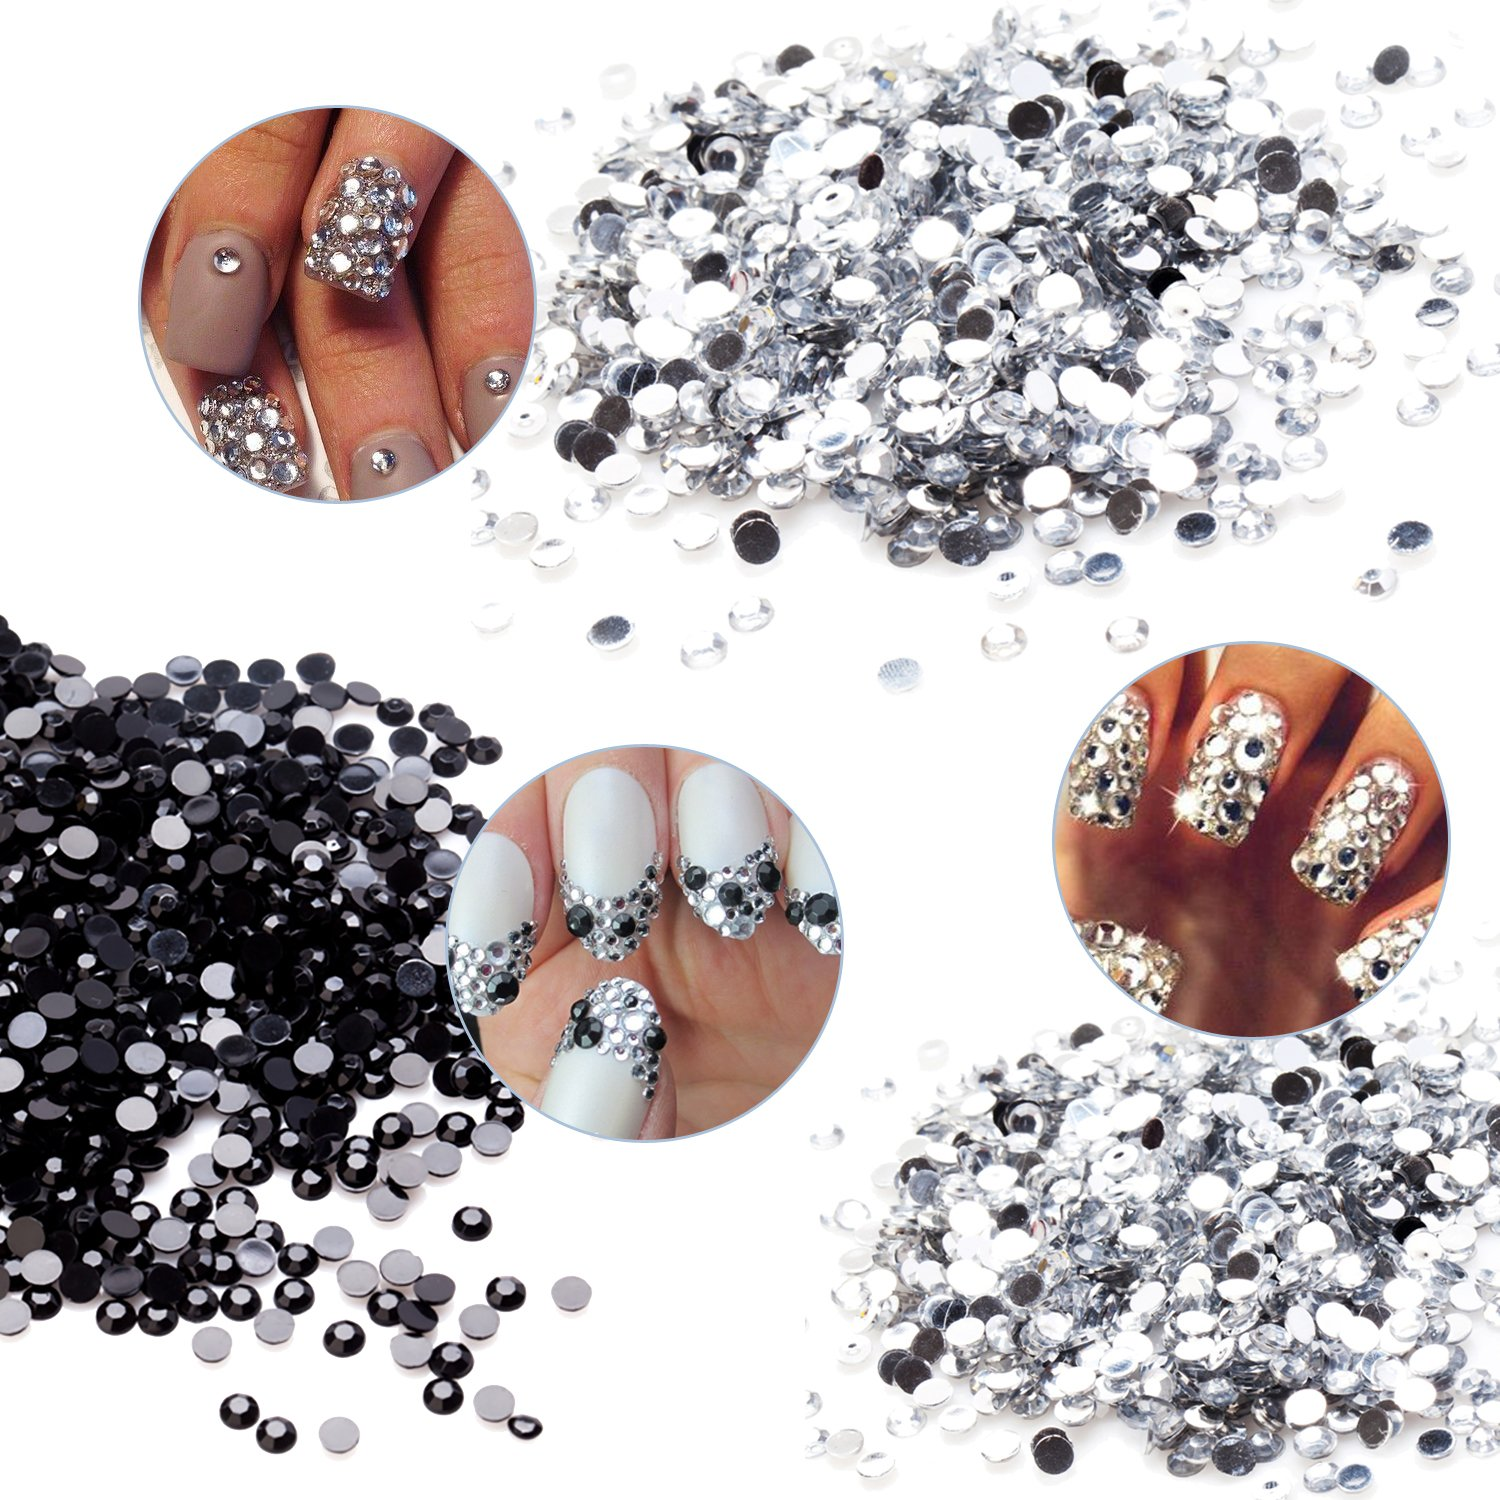 High Quality Professional Manicure Nail Art Decorations Set Kit of Different 3mm and 4mm Flat Back Gems Rhinestones Crystals Gemstones Jewels By VAGA®